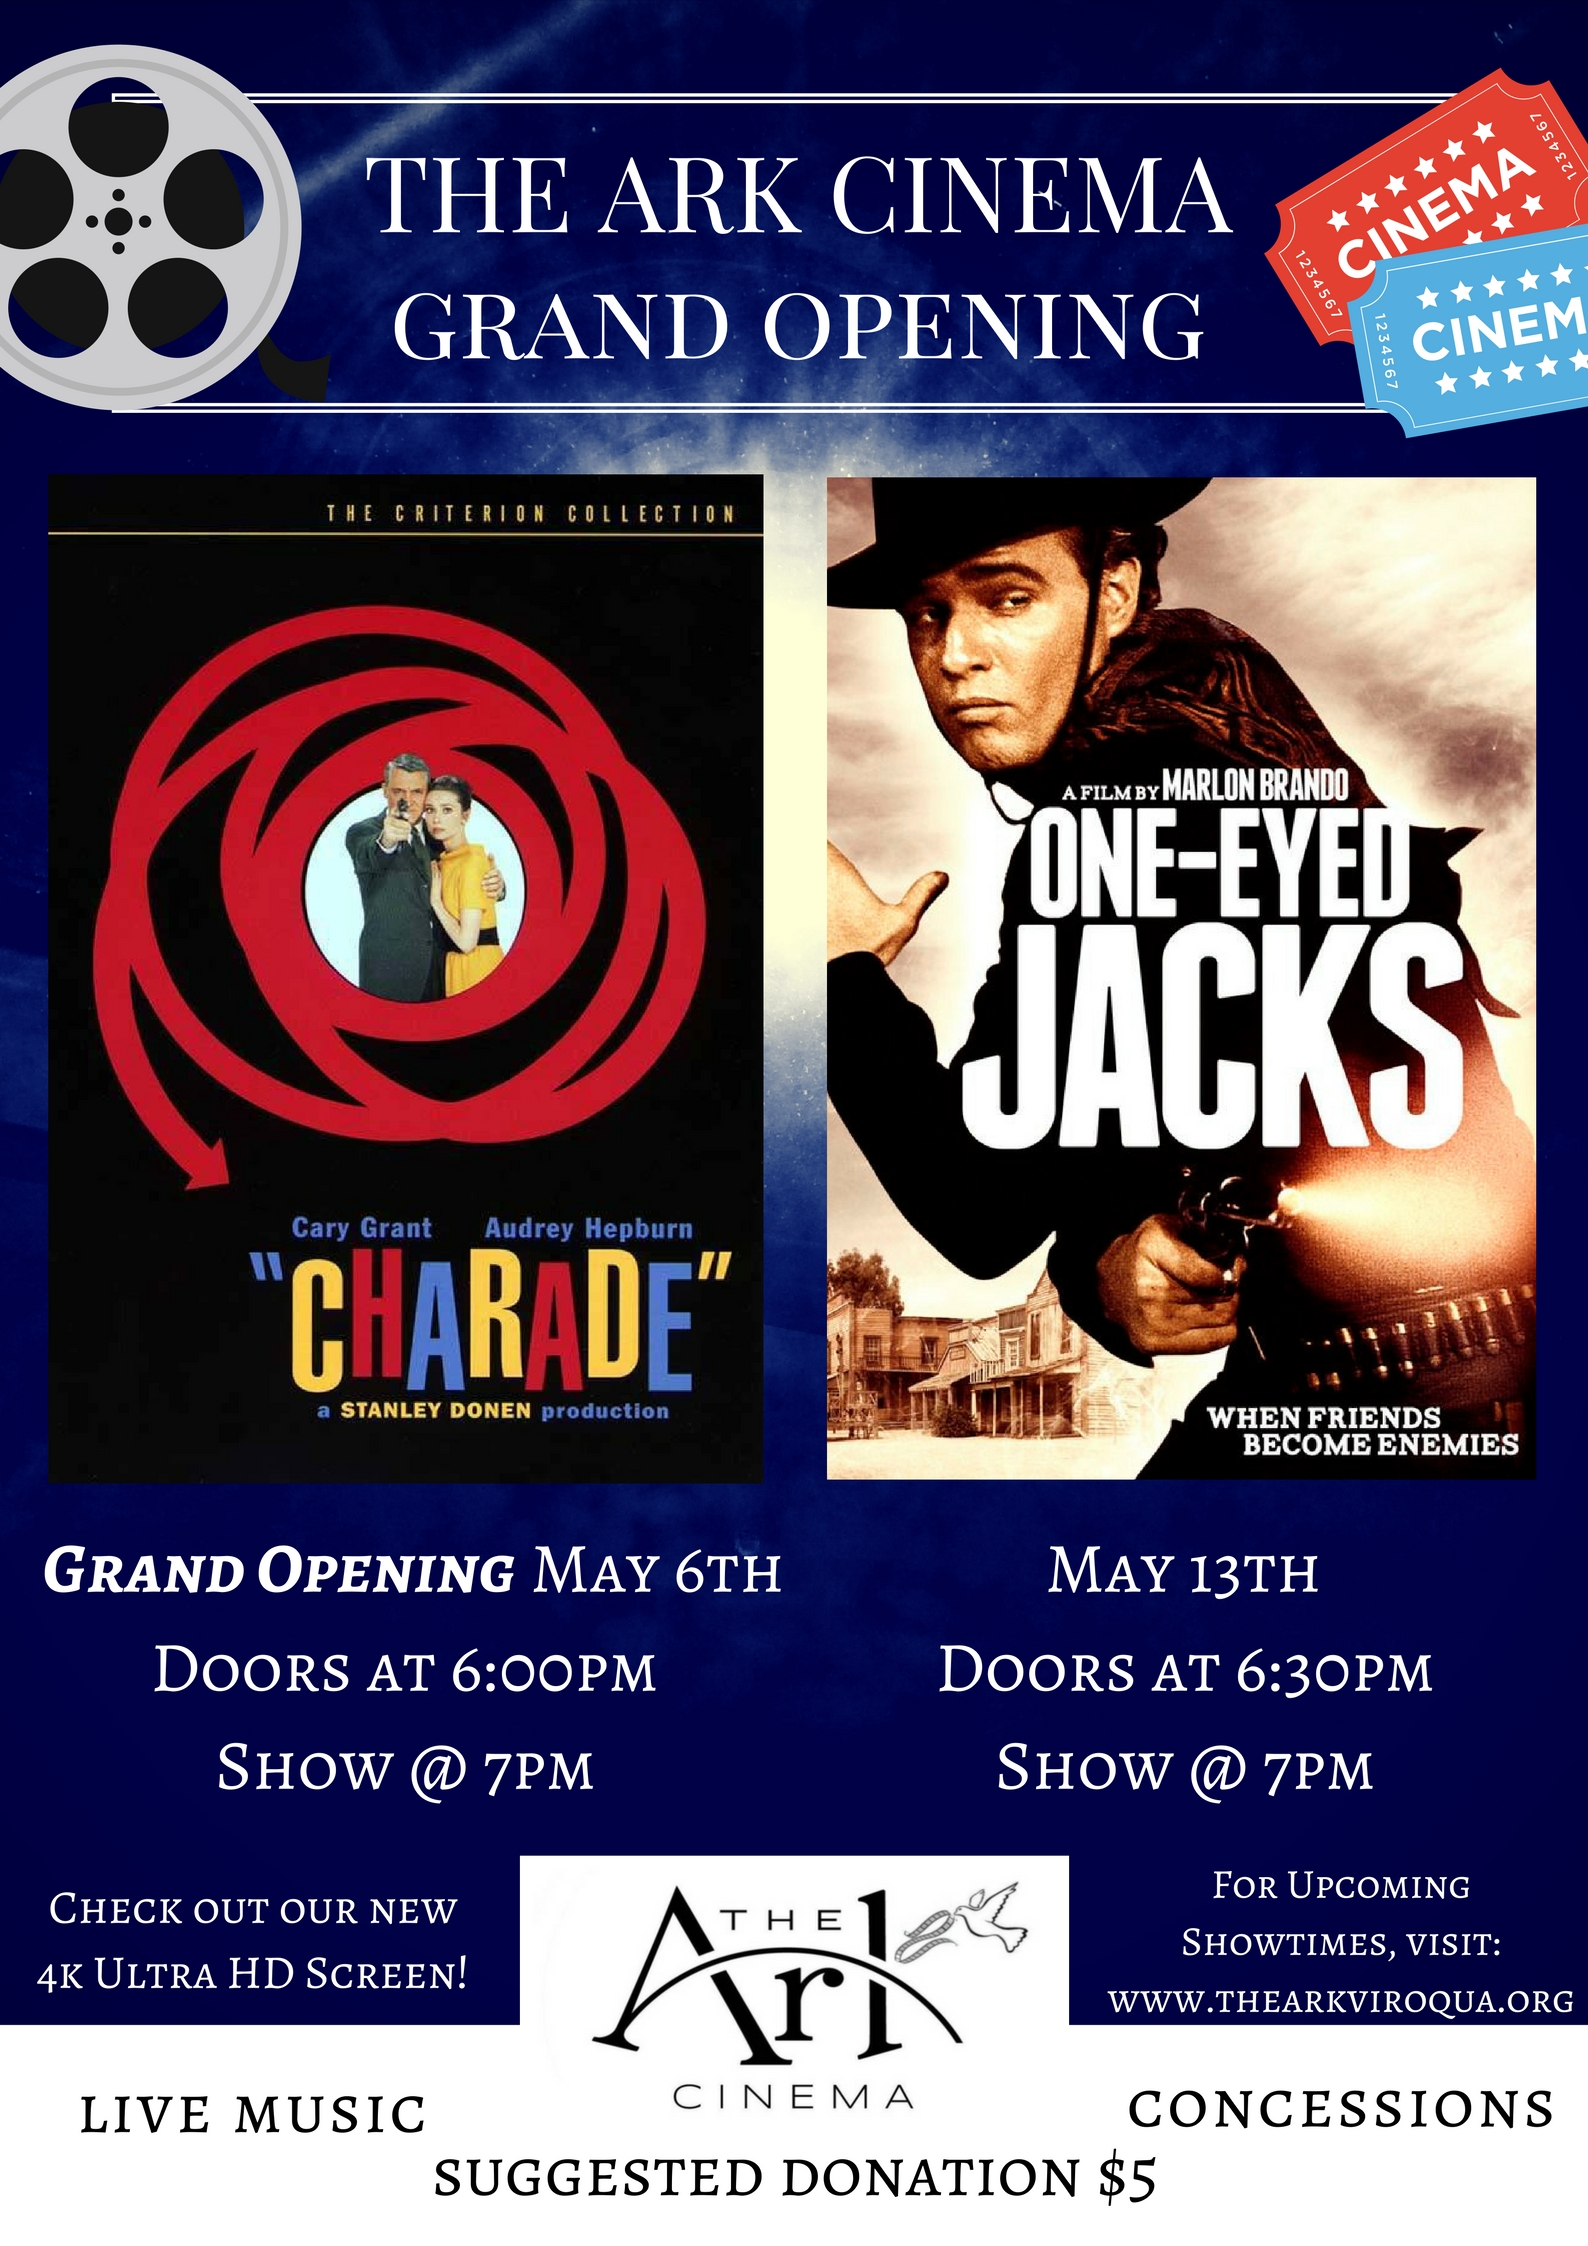 Grand Opening Ark Cinema!